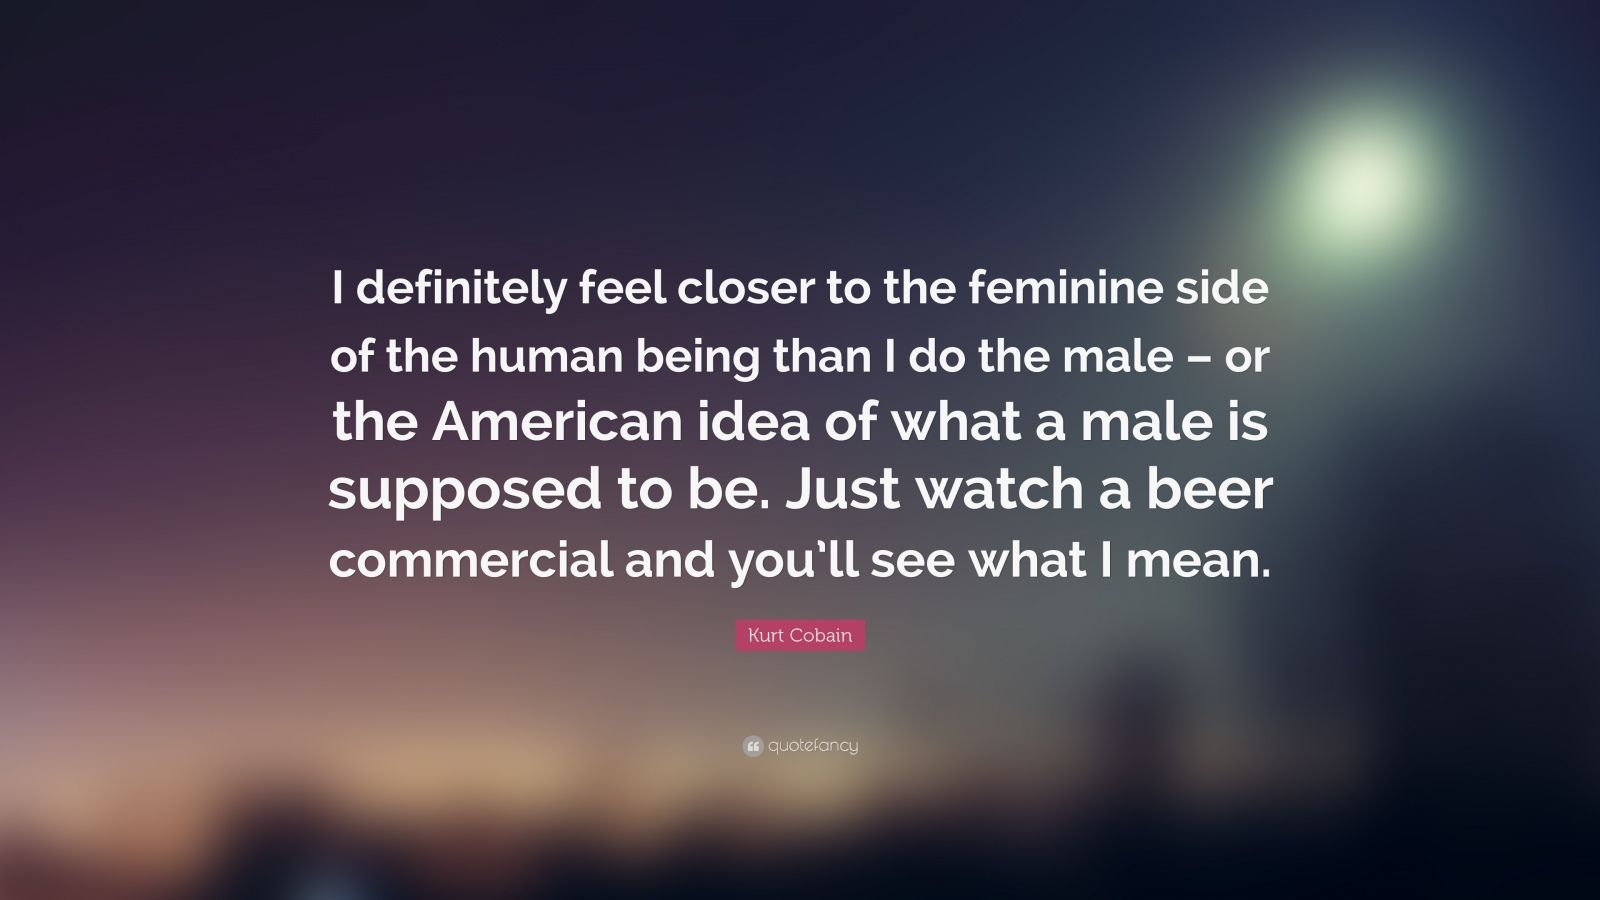 """Kurt Cobain Quote: """"I definitely feel closer to the feminine side of the human being than I do the male – or the American idea of what a male is supposed to be. Just watch a beer commercial and you'll see what I mean."""""""